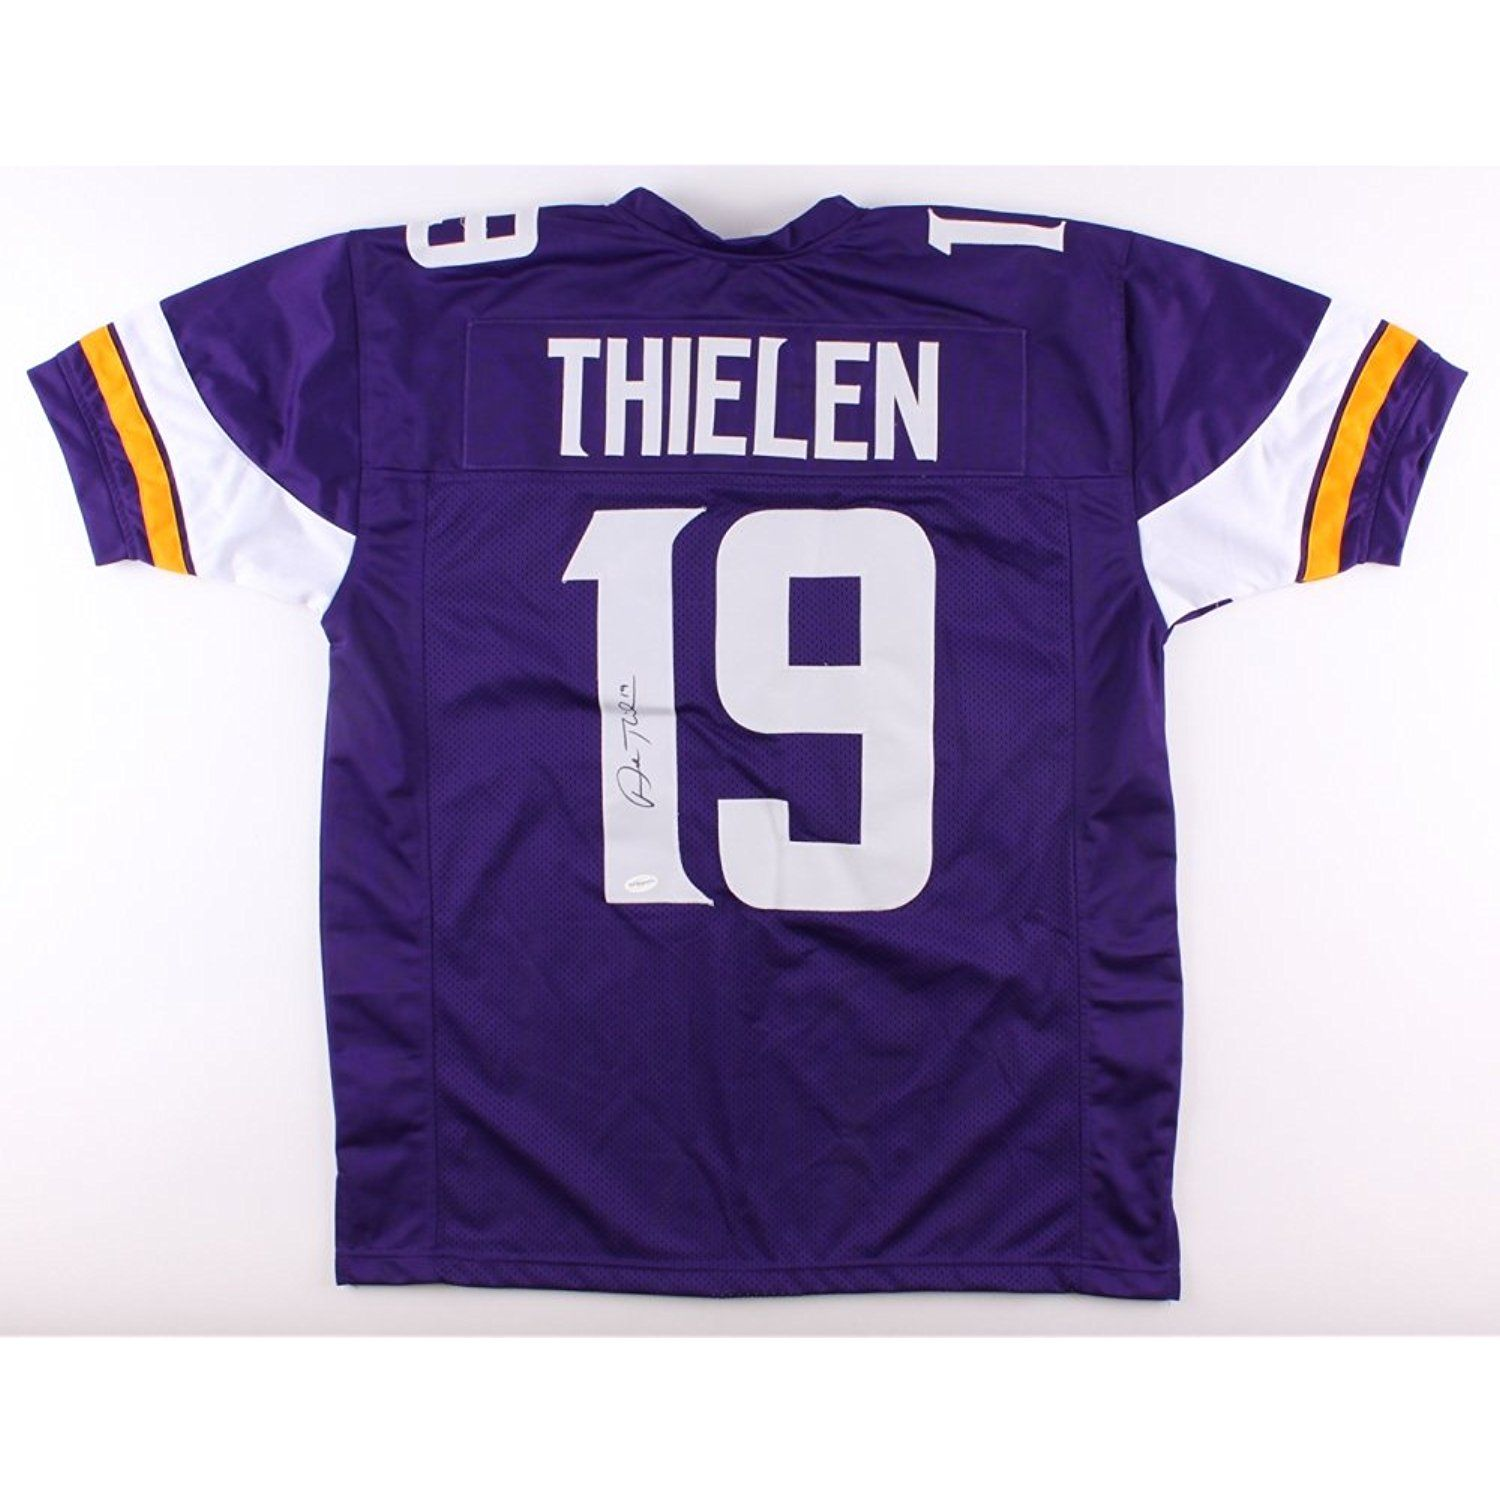 Adam Thielen Autographed Signed Minnesota Vikings Purple Jersey Certified  Authentic TSE Hologram  SportsCollectibles 8e5fdf50e